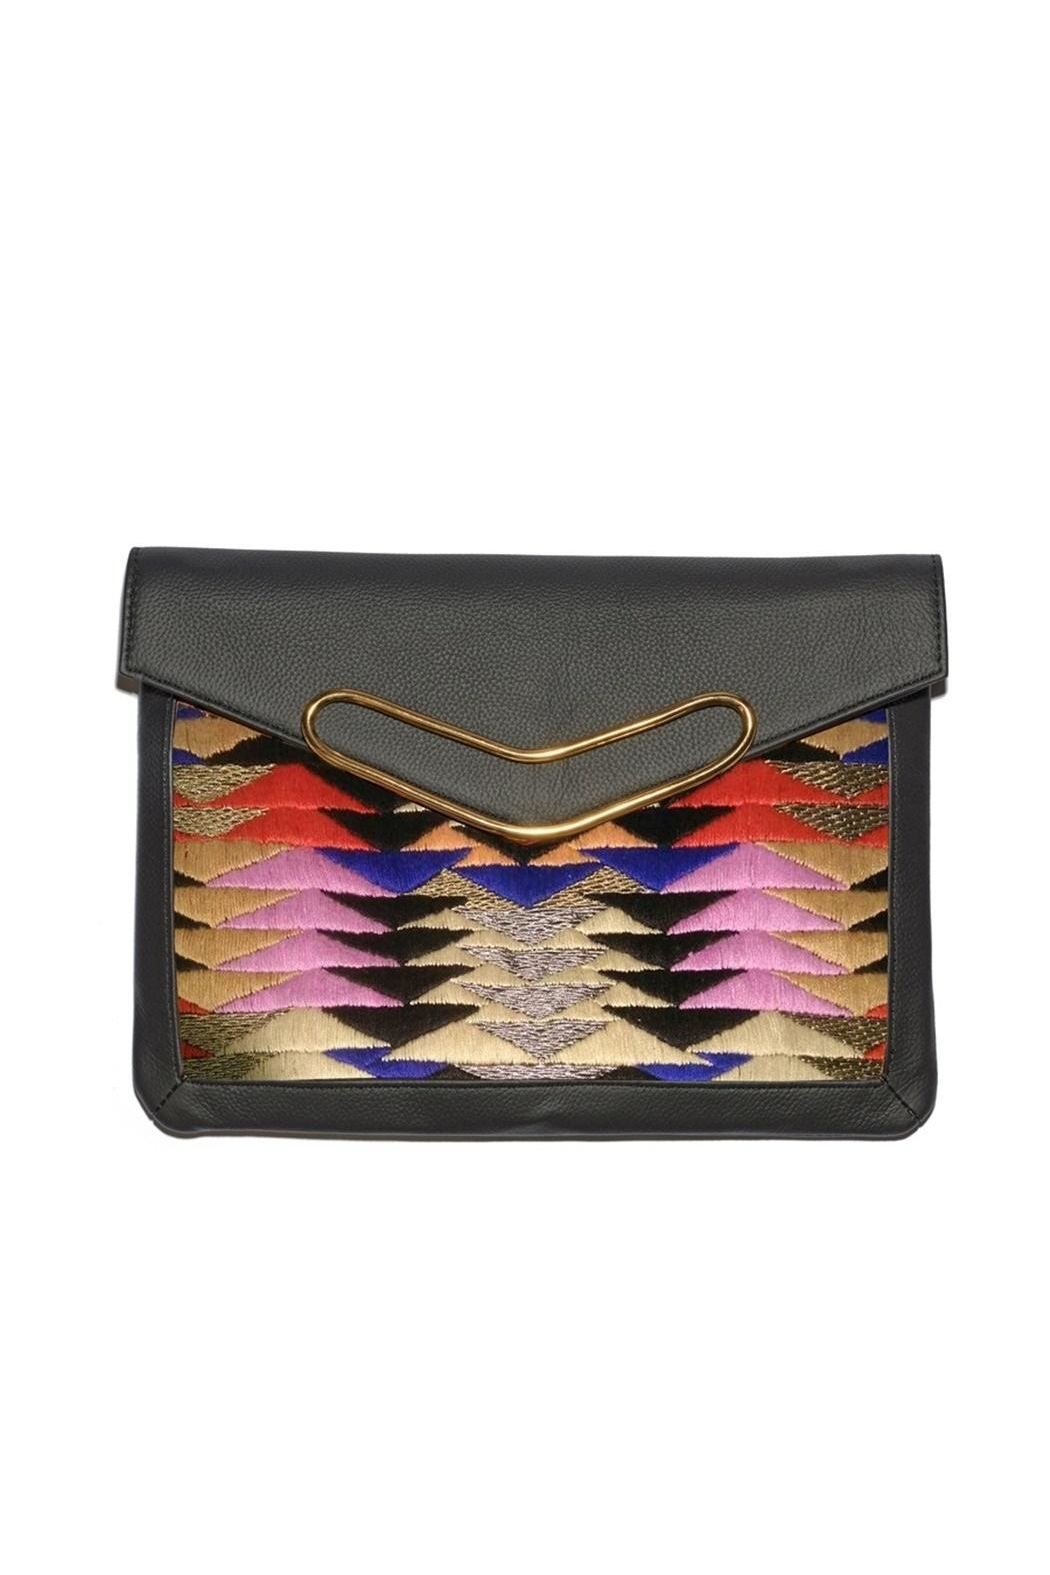 Lizzie Fortunato Midnight Cruiser Clutch - Front Cropped Image